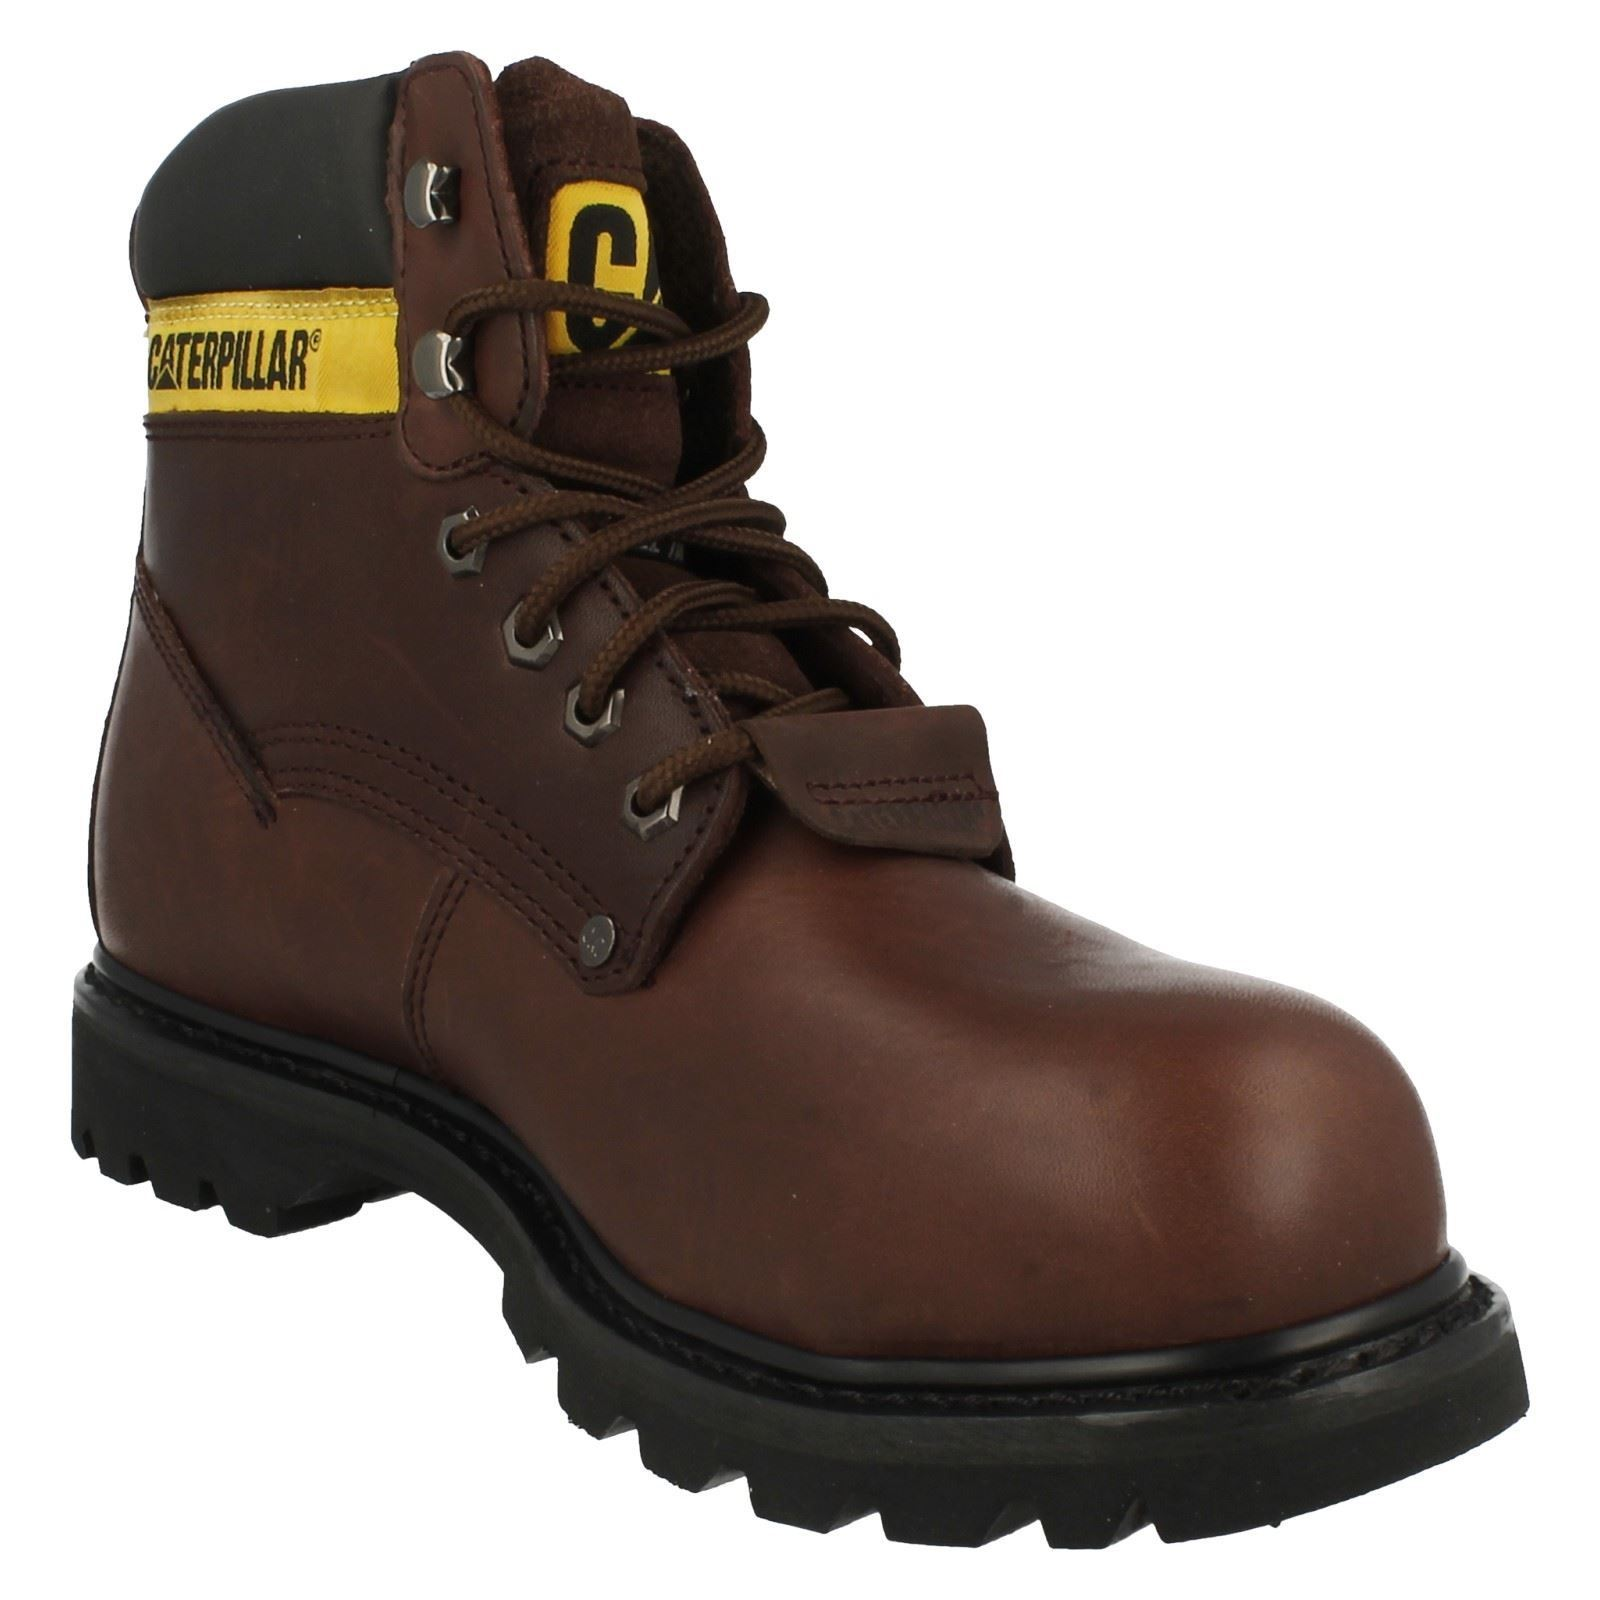 Mens Caterpillar Lace Up Boots Steel Toe Cap Boots Up Sheffield bd86bf